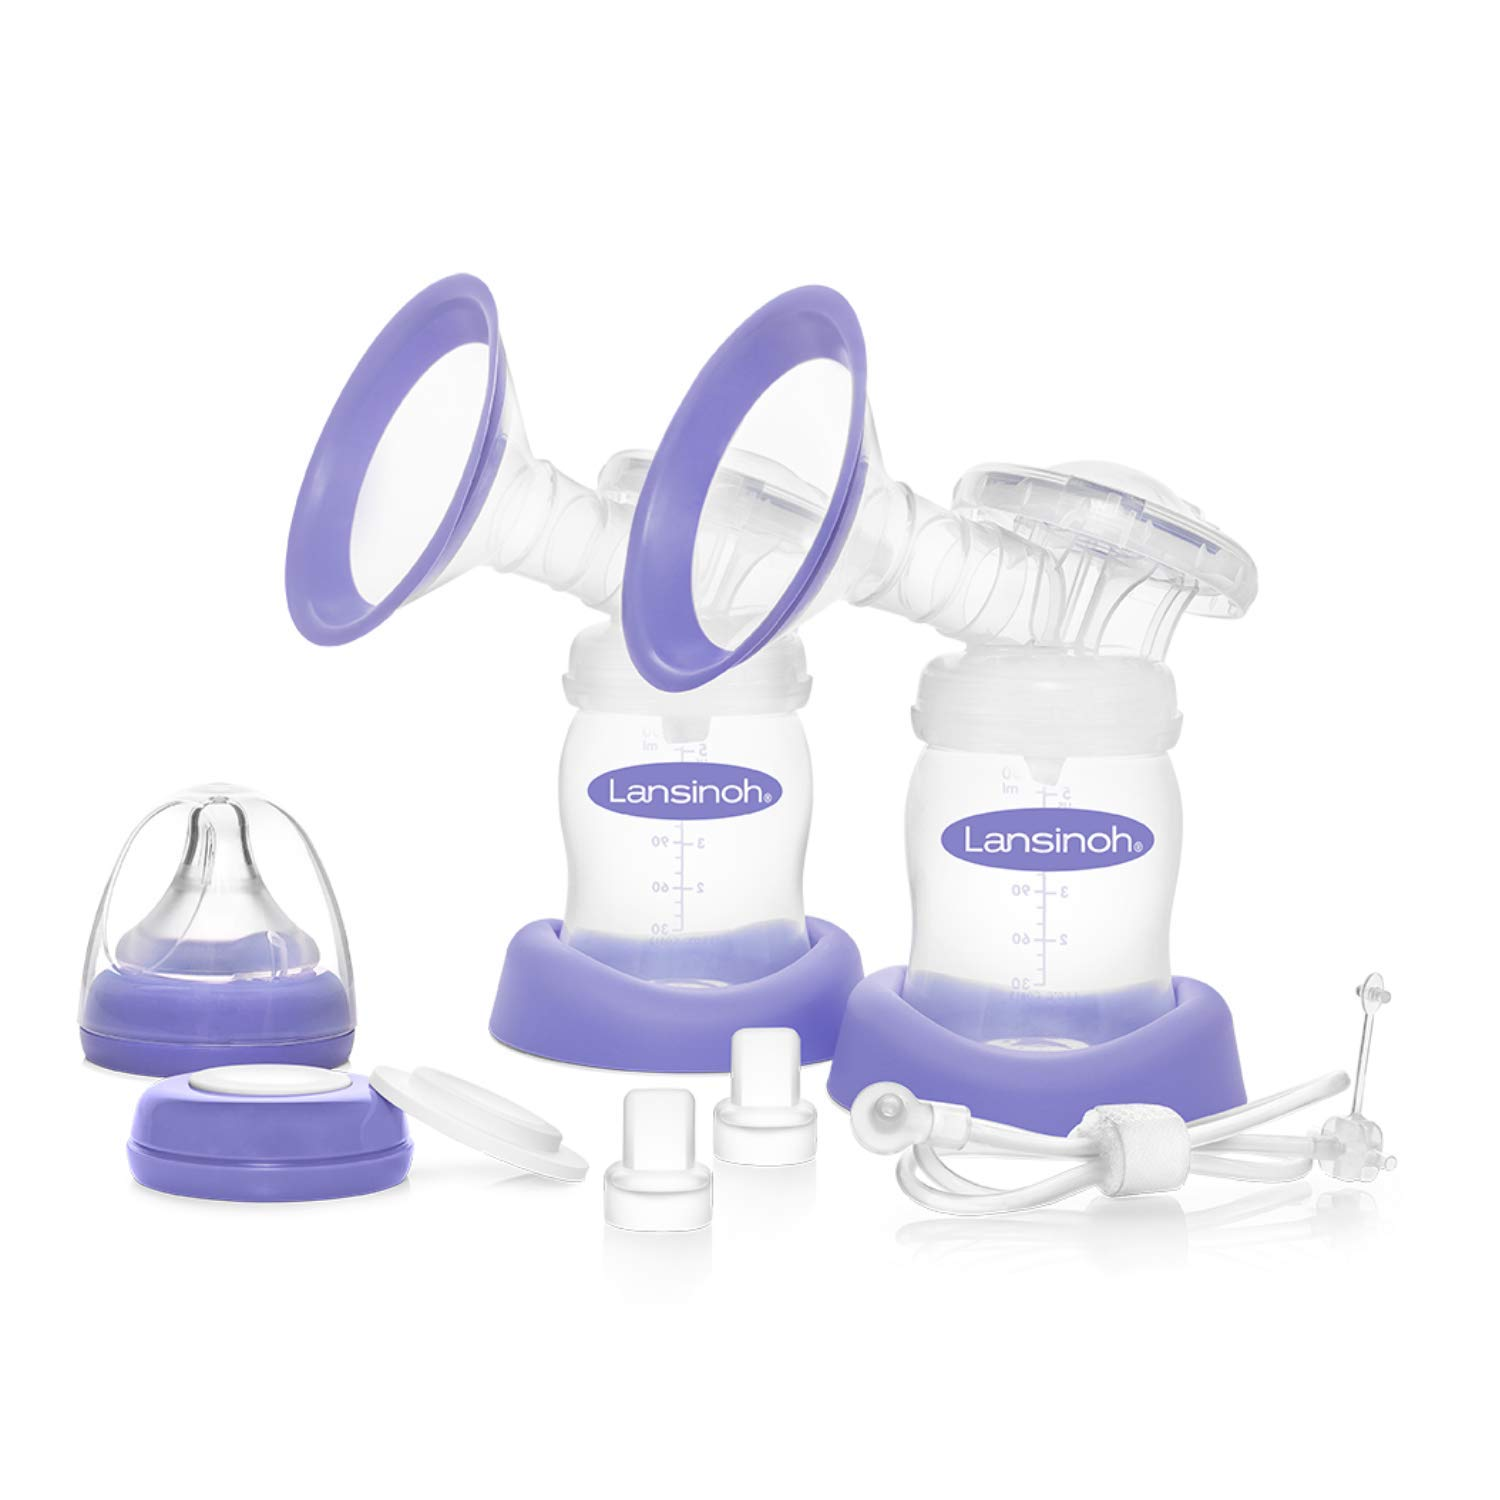 Lansinoh Extra Pumping Set with Breast Pump Parts by Lansinoh